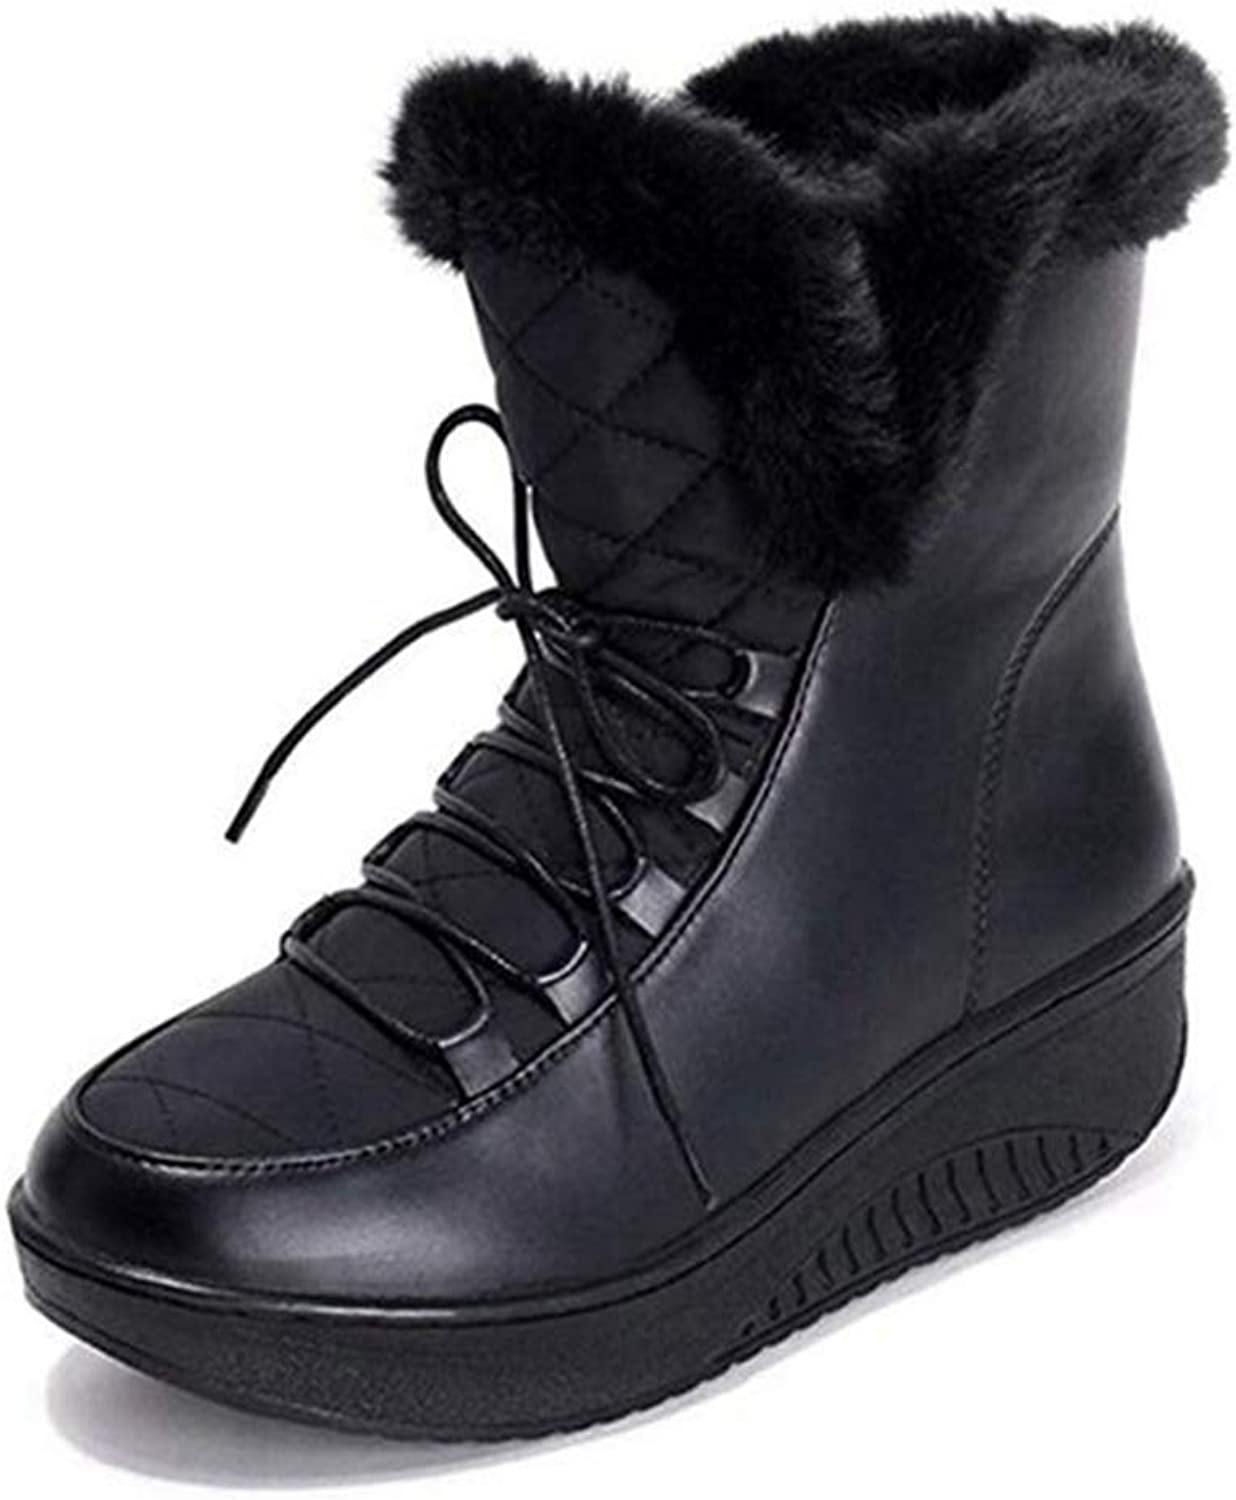 Fashion shoesbox Women's Winter Waterproof Snow Boots Warm Thick Fur Inside Round Toe Lace Up Platform Wedges Ankle Boots